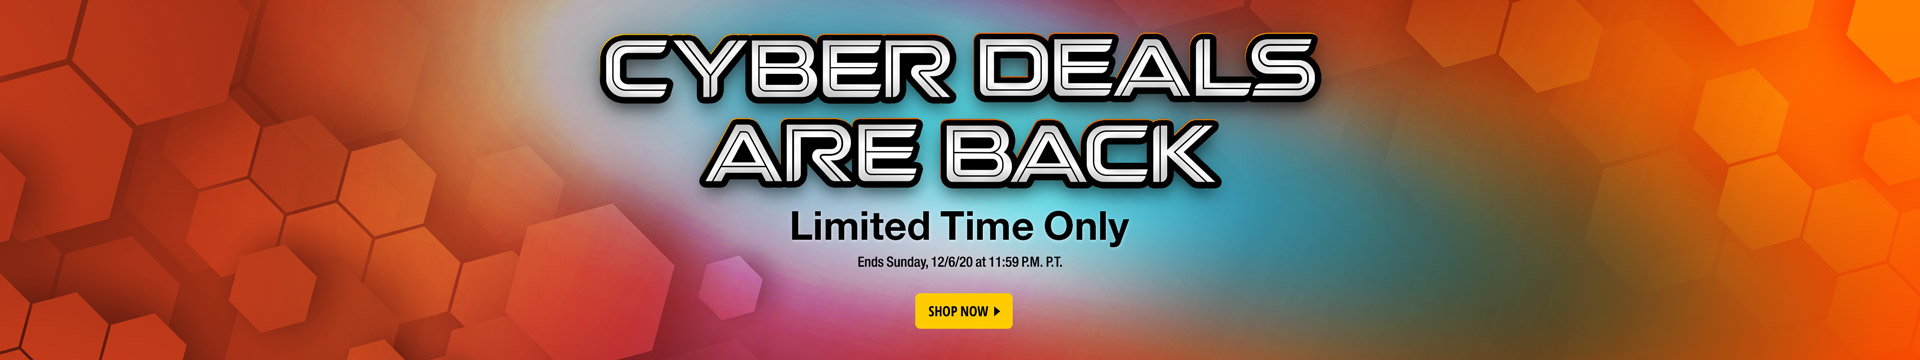 Cyber Deals Are Back